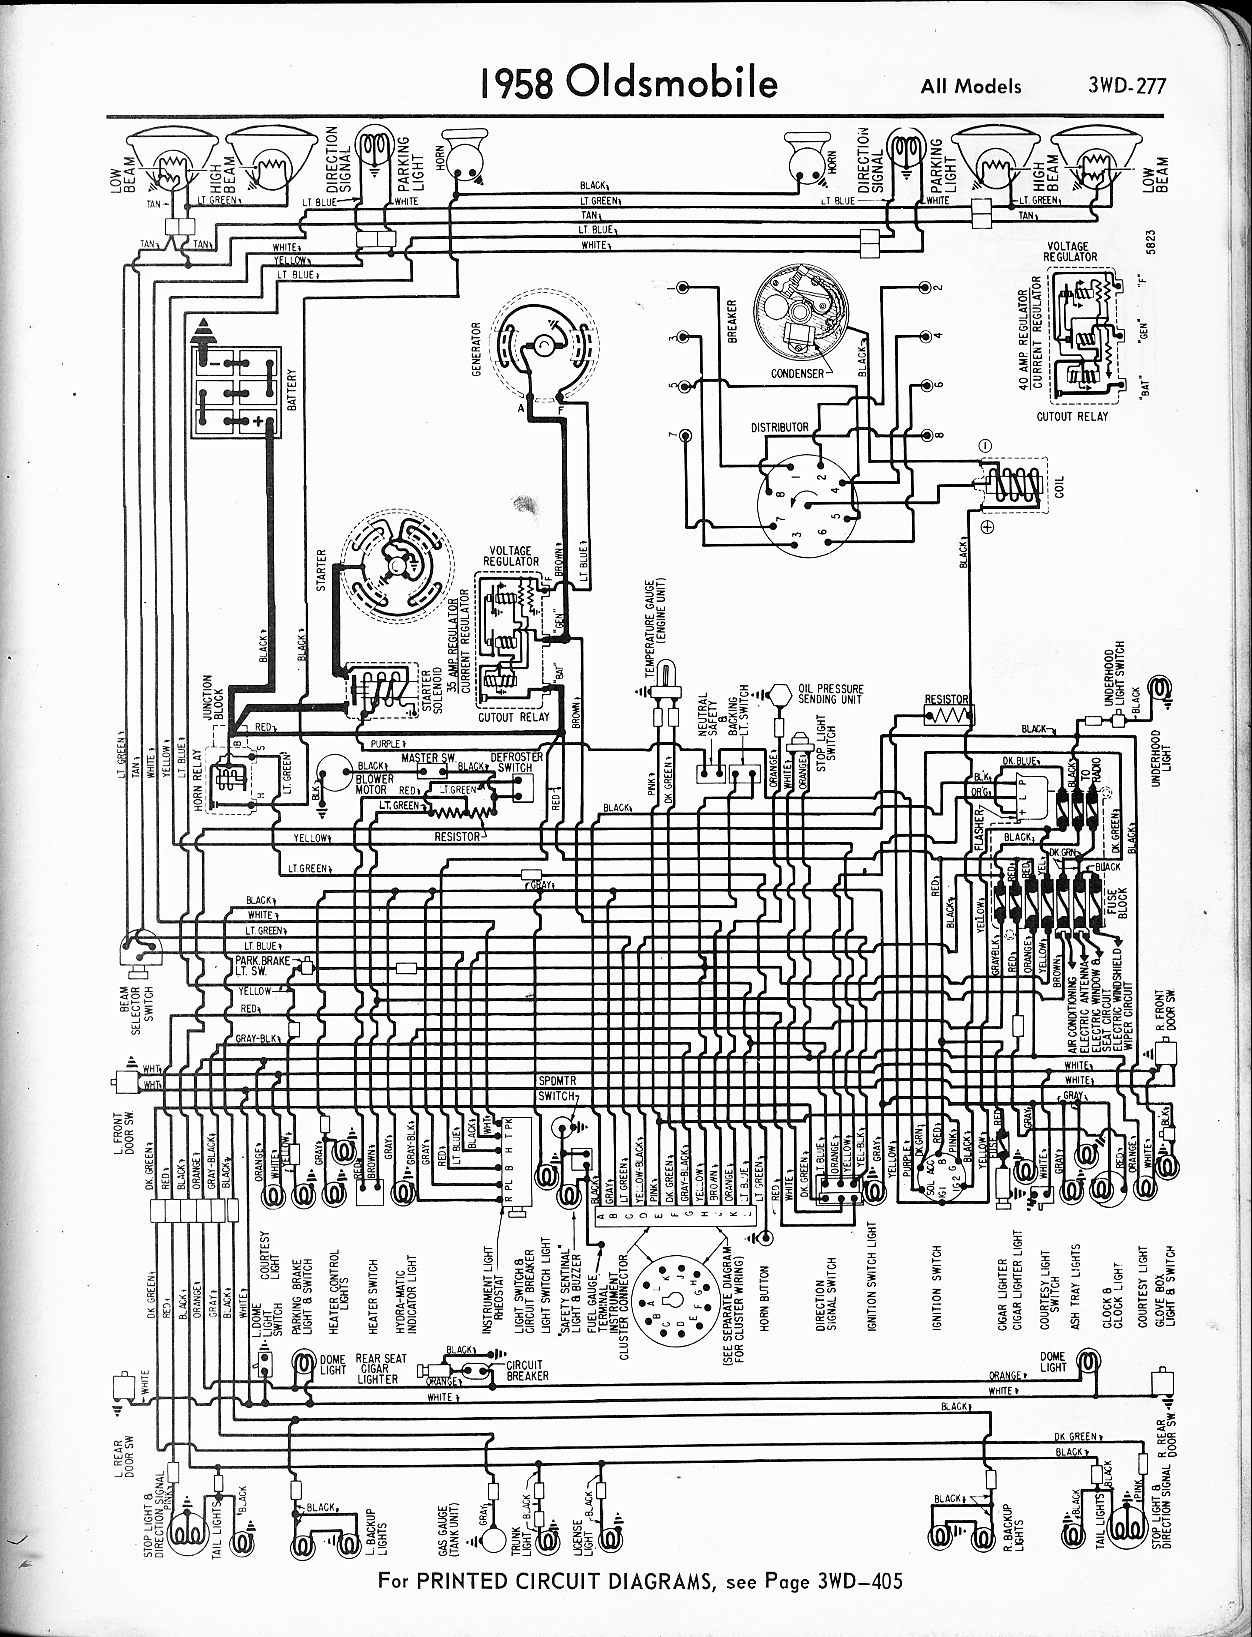 1970 Cutlass Wiring Diagram Pictures to Pin on Pinterest